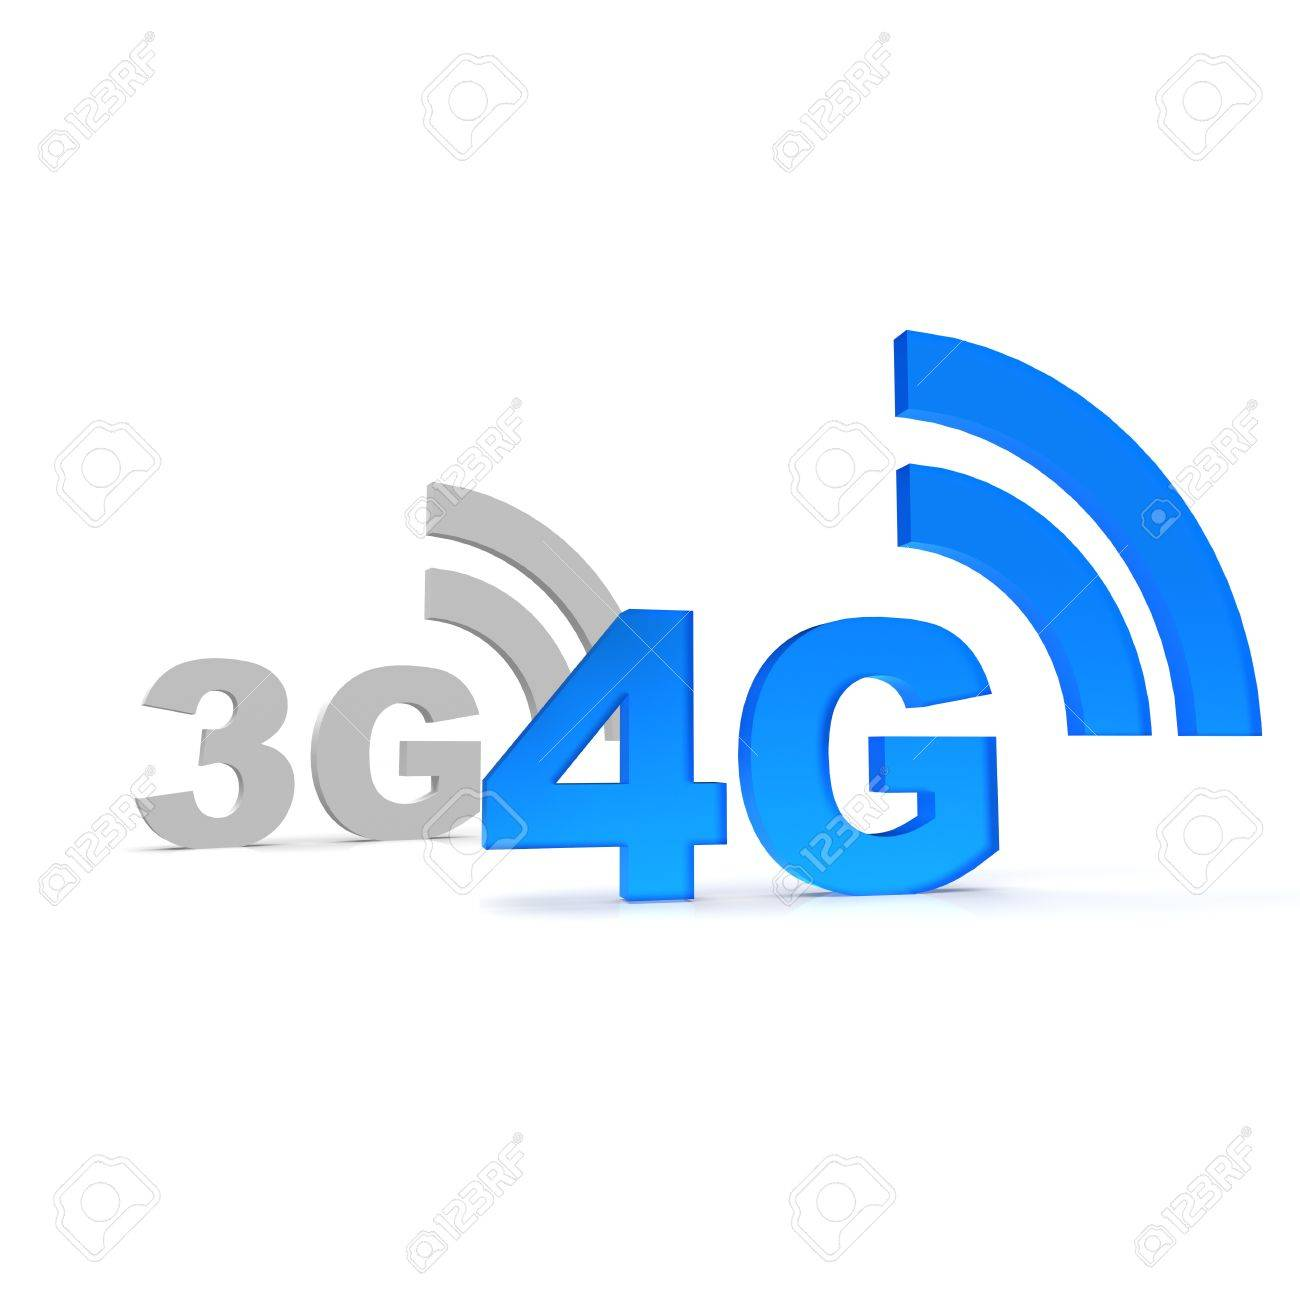 3G And 4G Icon Stock Photo, Pi...